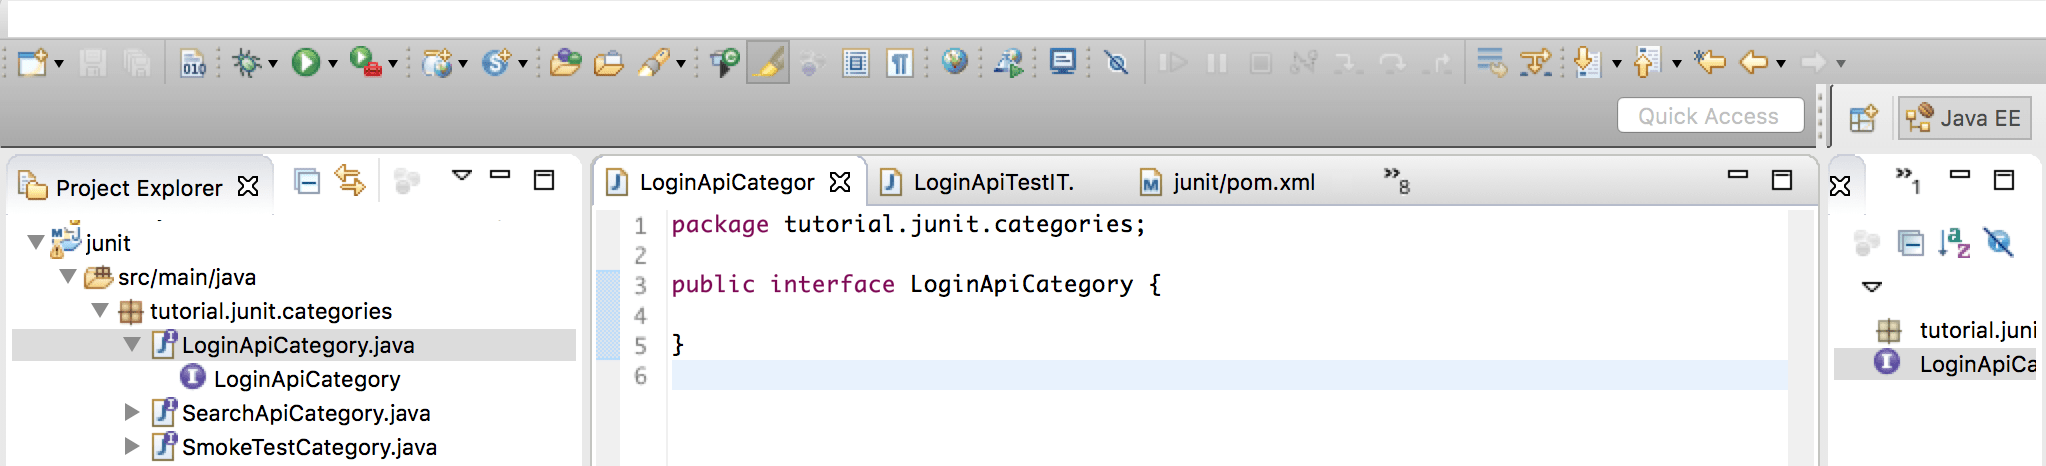 Structuring integration tests using JUnit categories by